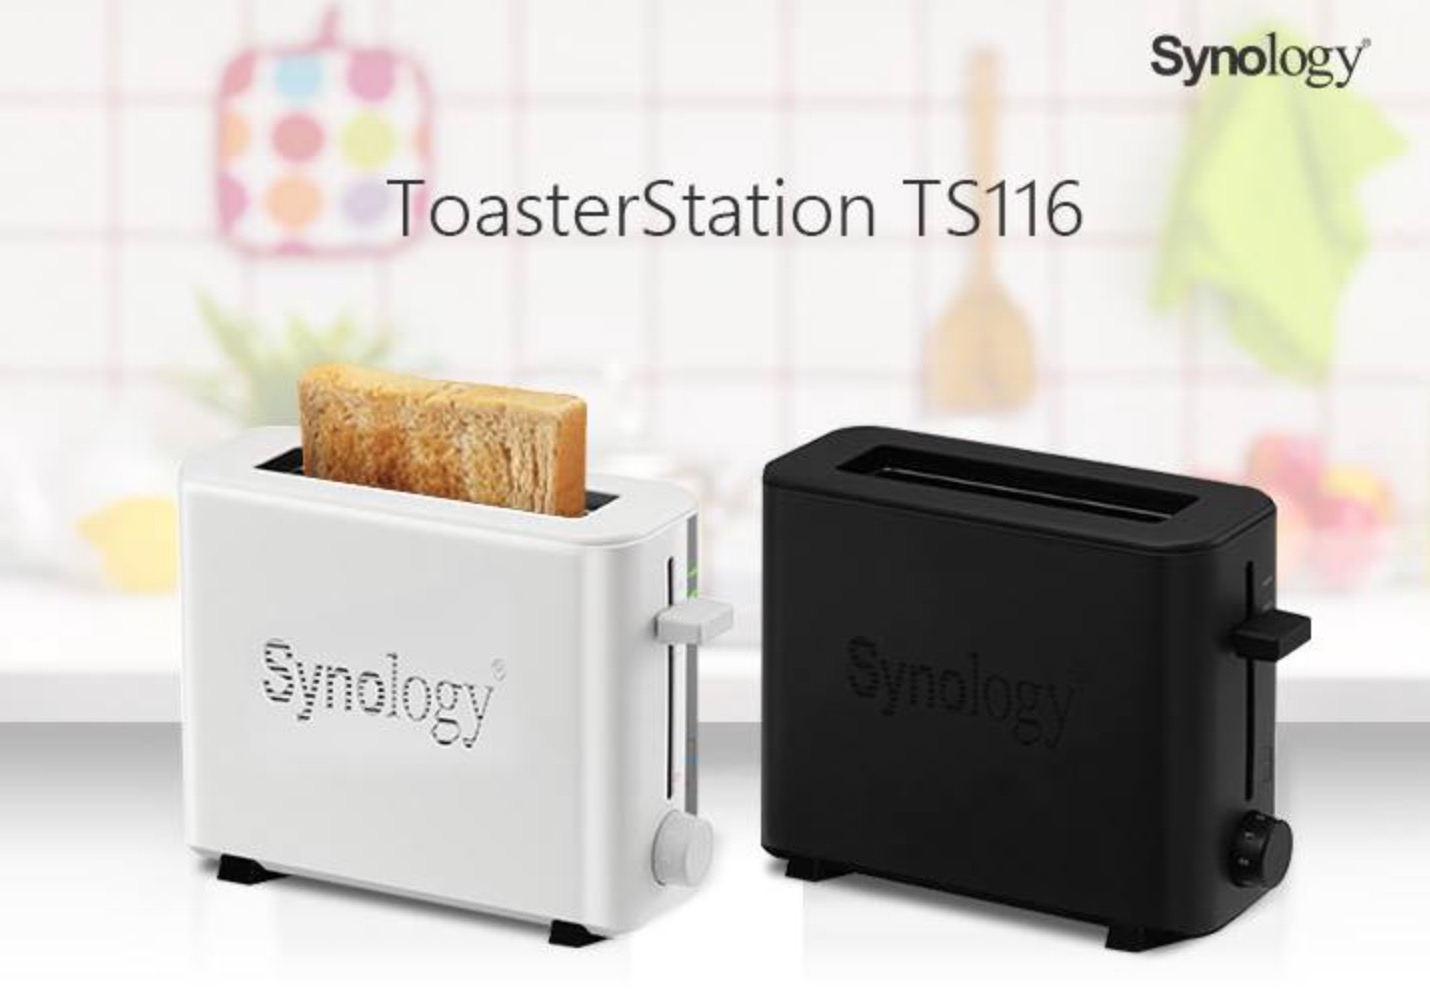 Synology ToasterStation